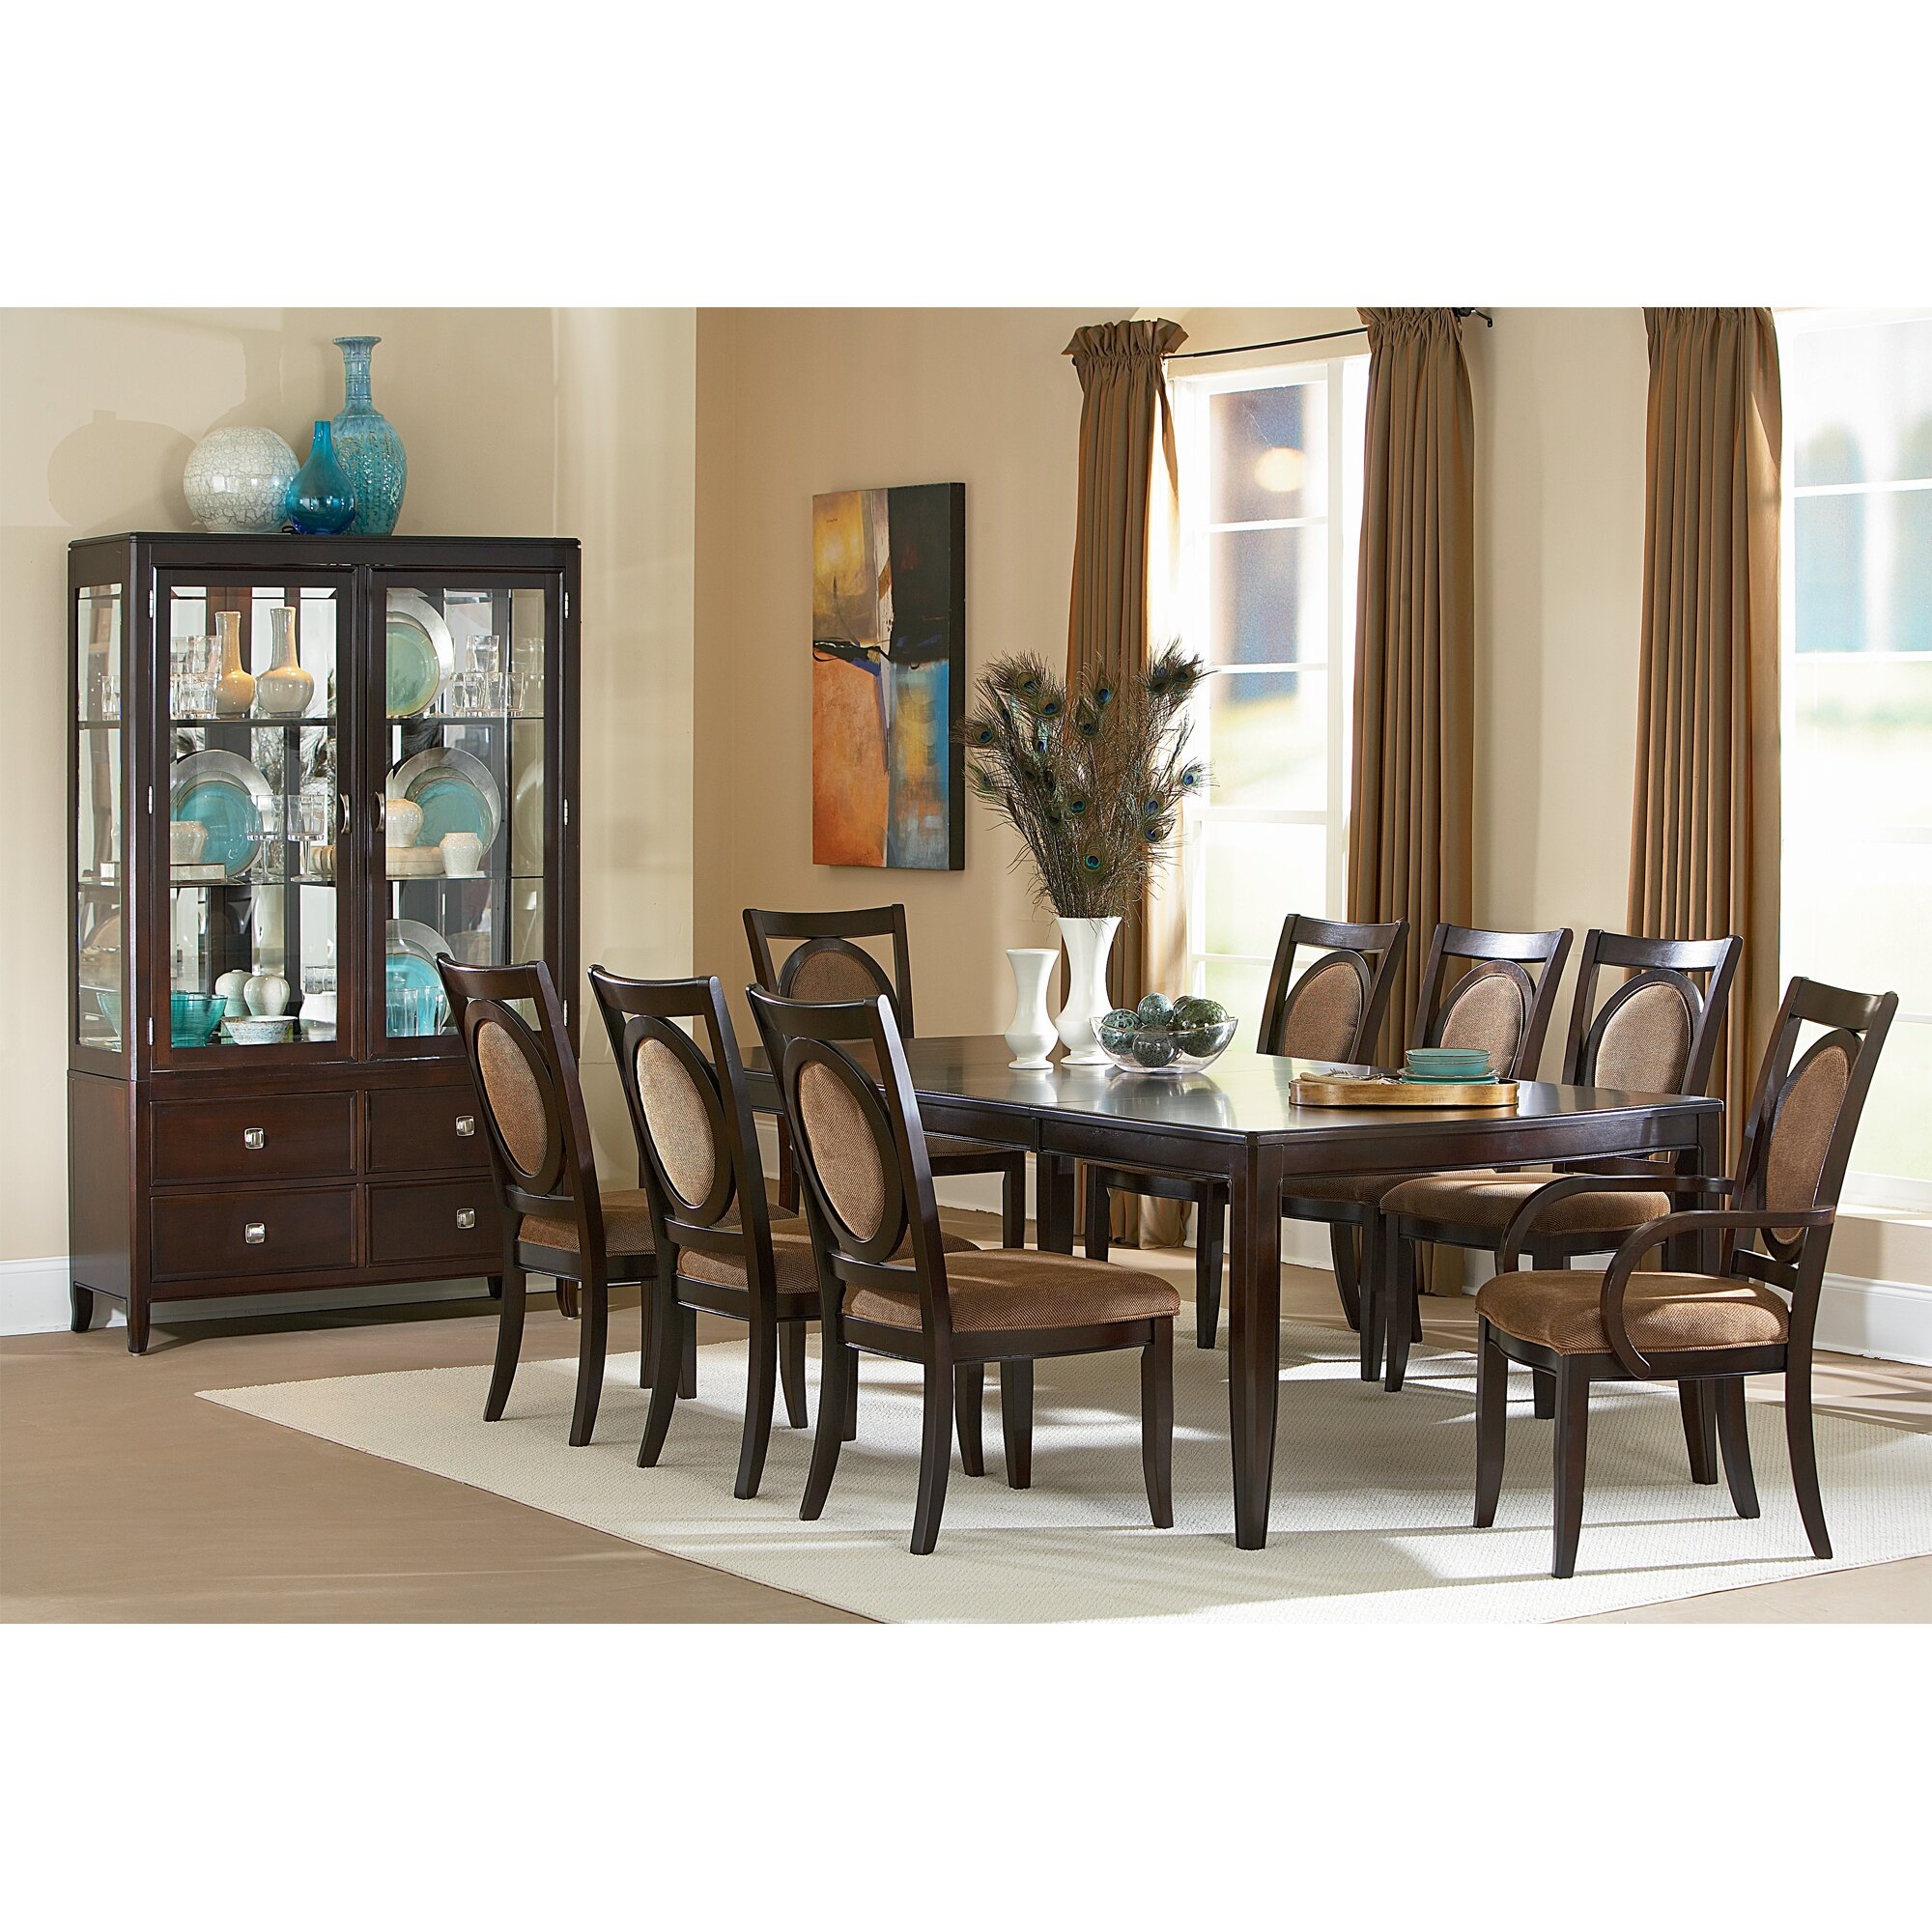 Silver Dining Room: Steve Silver Furniture Montblanc Side Chair & Reviews